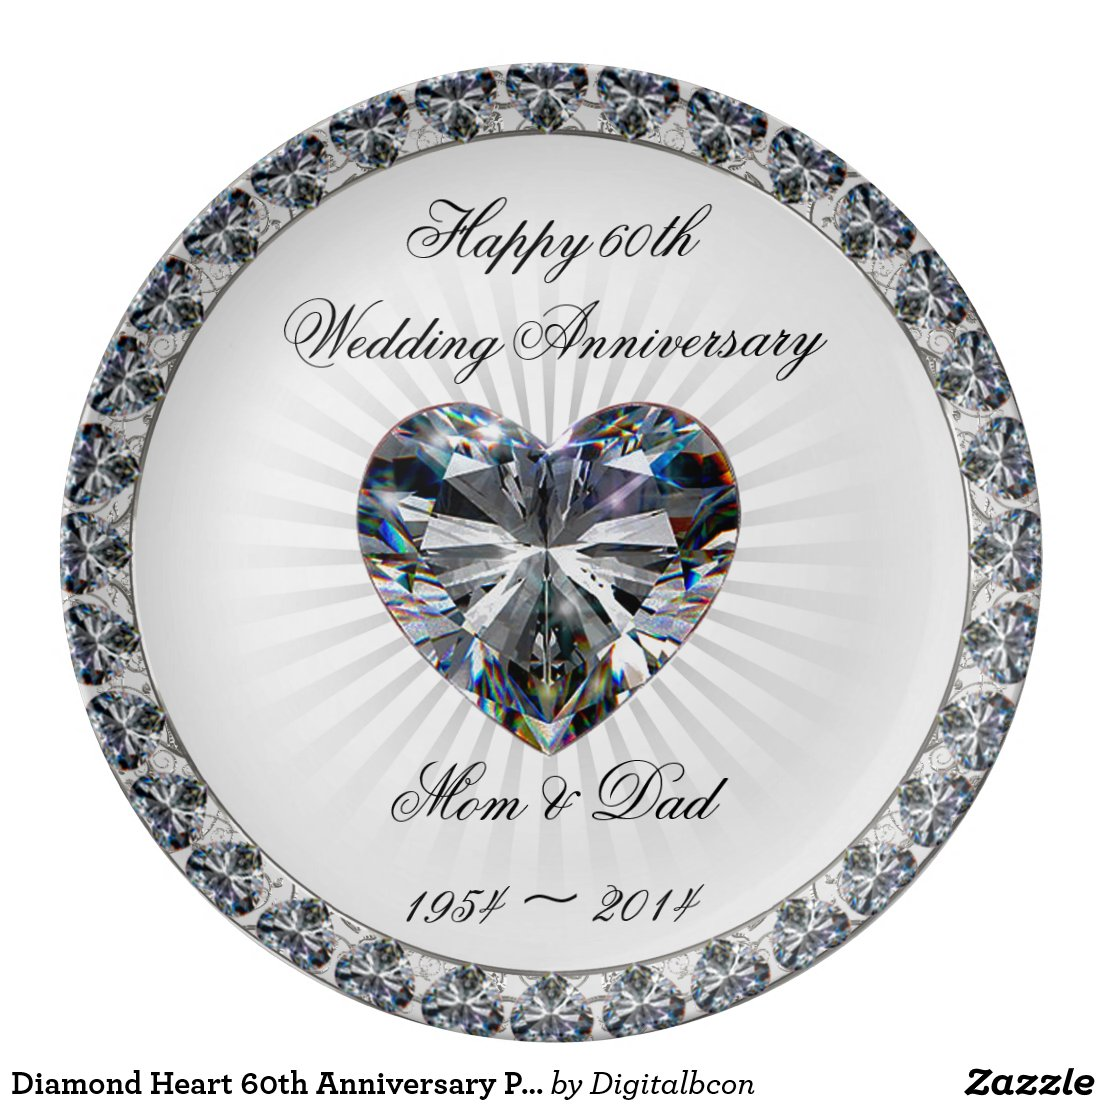 Diamond Heart 60th Anniversary Porcelain Plate